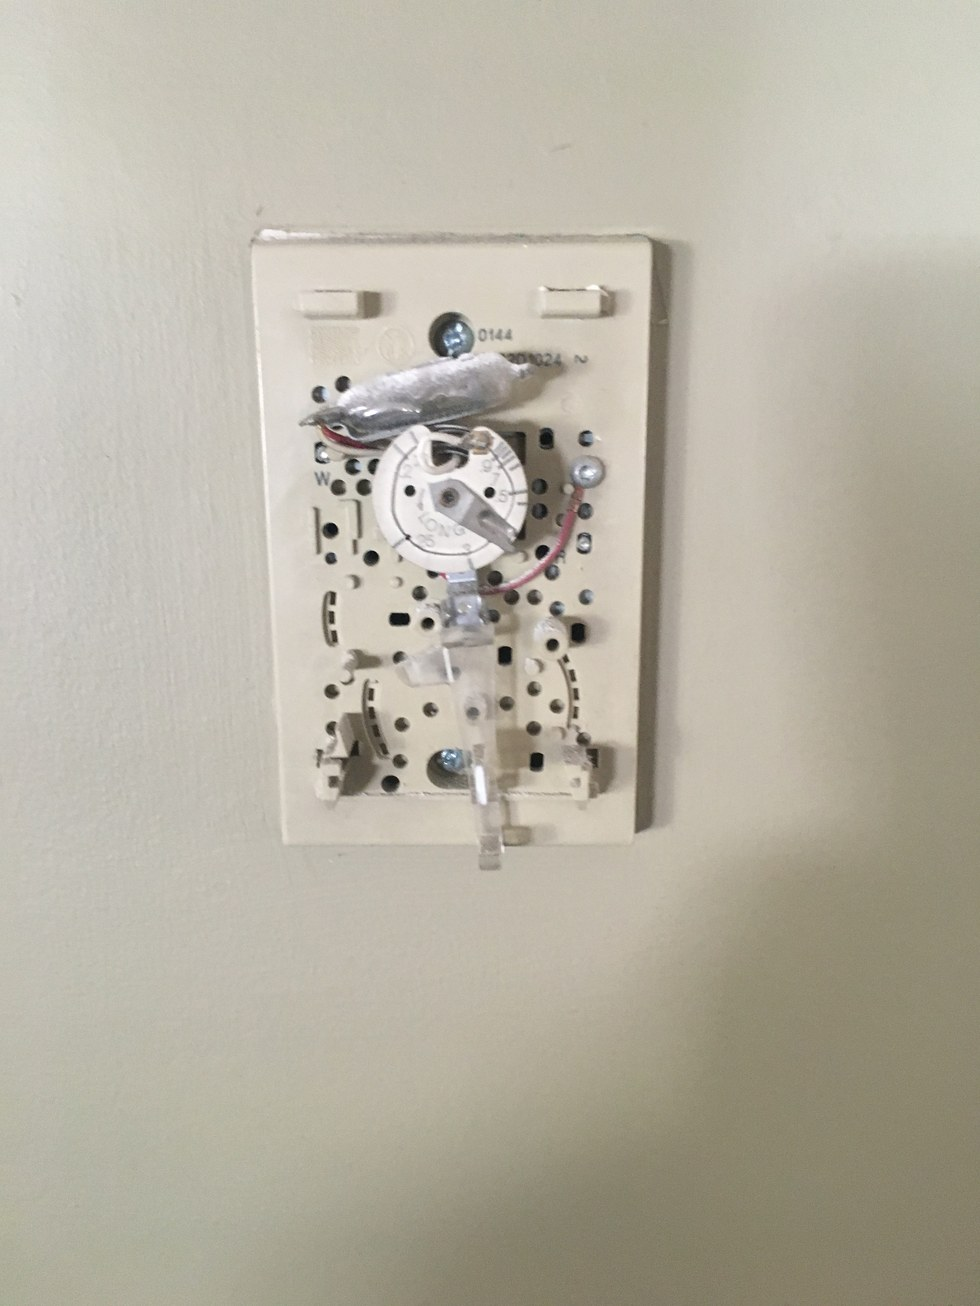 What You Need To Know About Smart Thermostats C Wire Padtronics Wiring A Mercury Thermostat Example Of Blob